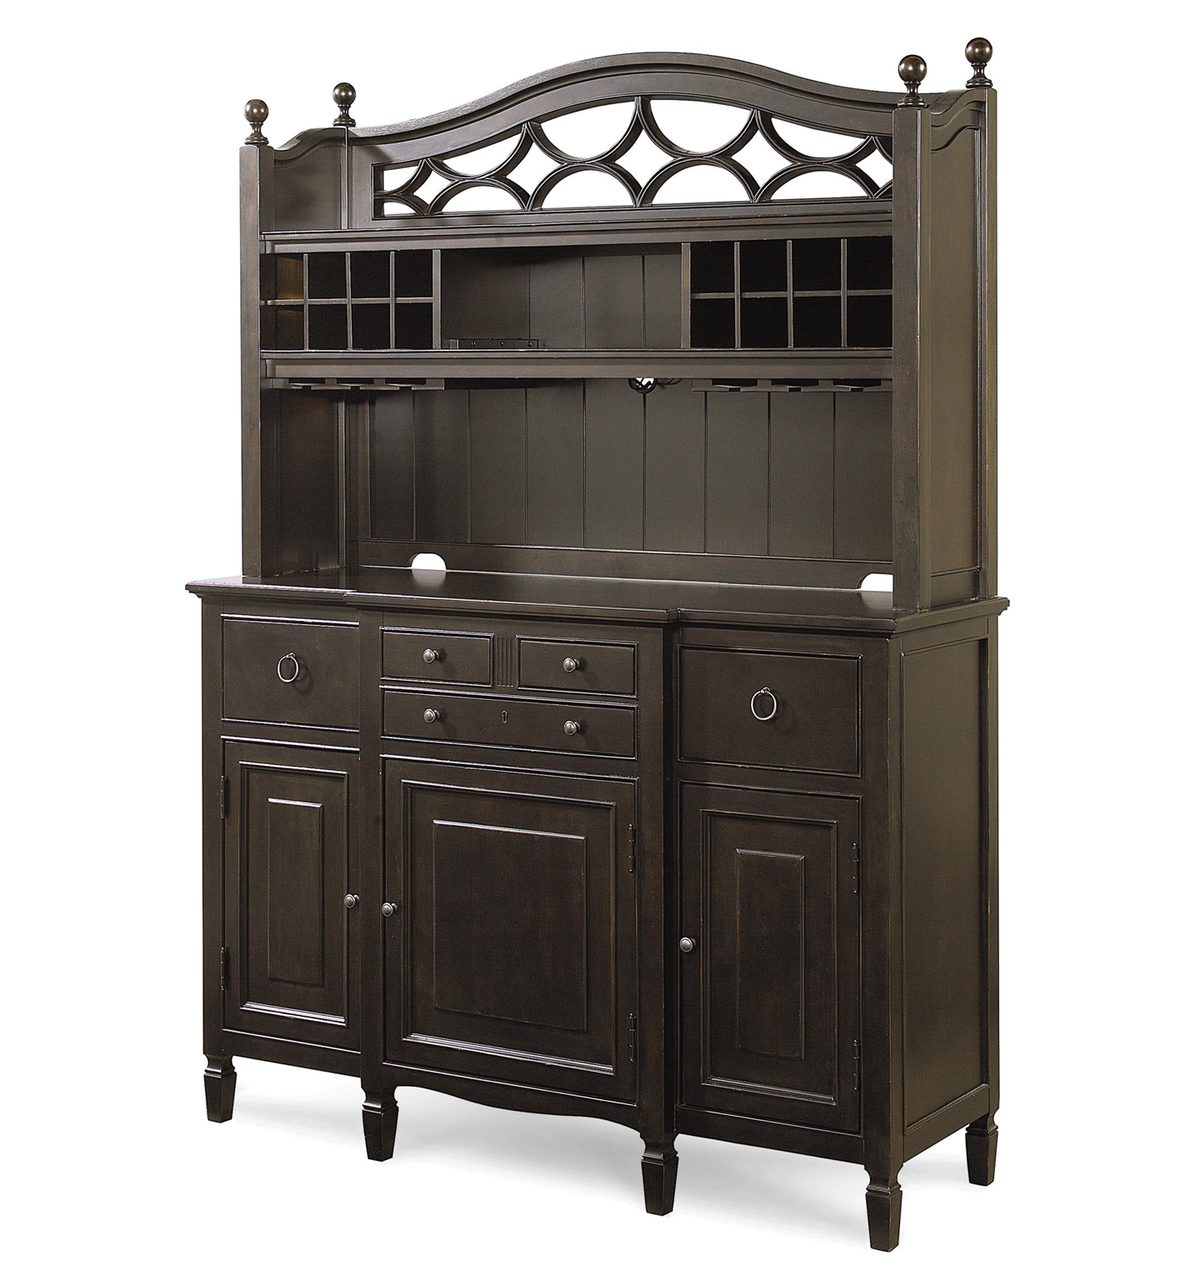 Country Chic Maple Wood Black Kitchen Buffet With Bar Hutch